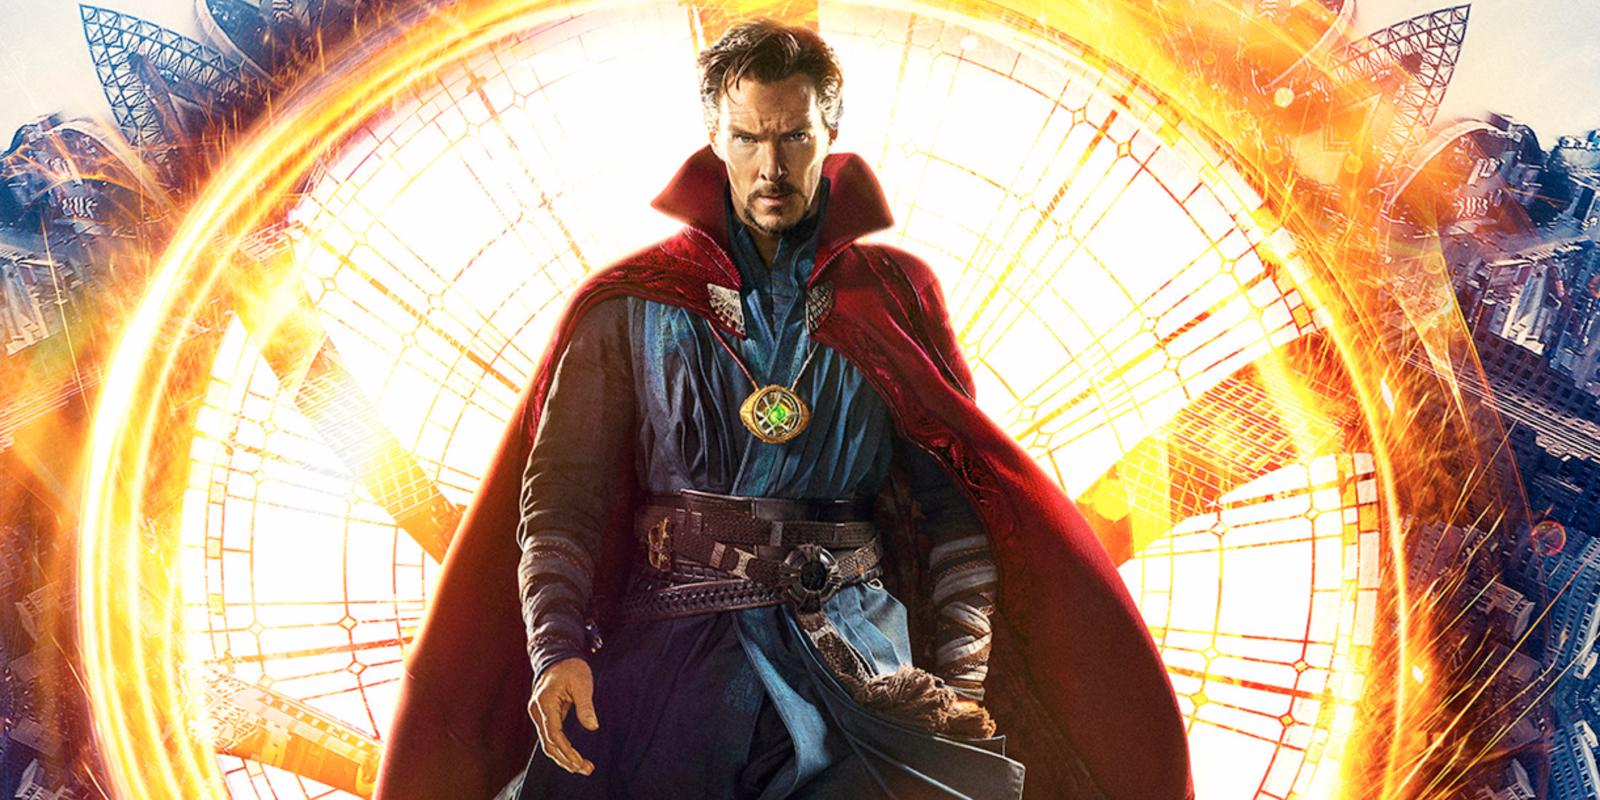 Movie Review Example: Who is Doctor Strange?